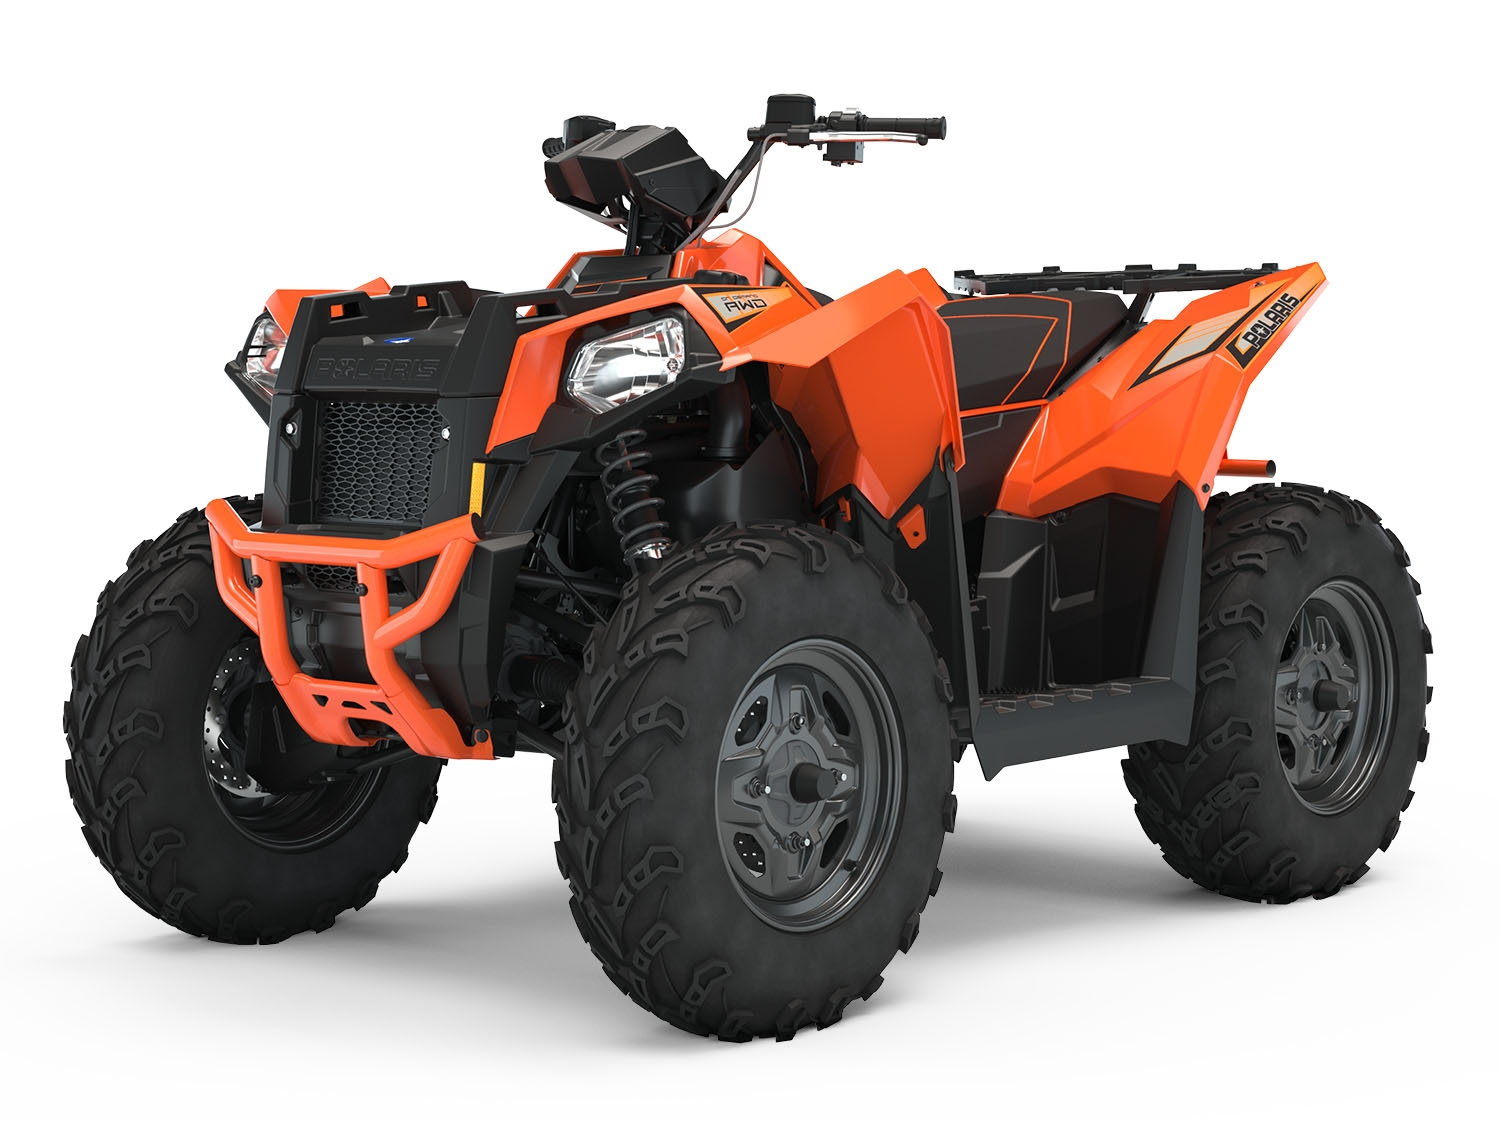 2020-scrambler-850-orange-madness_1